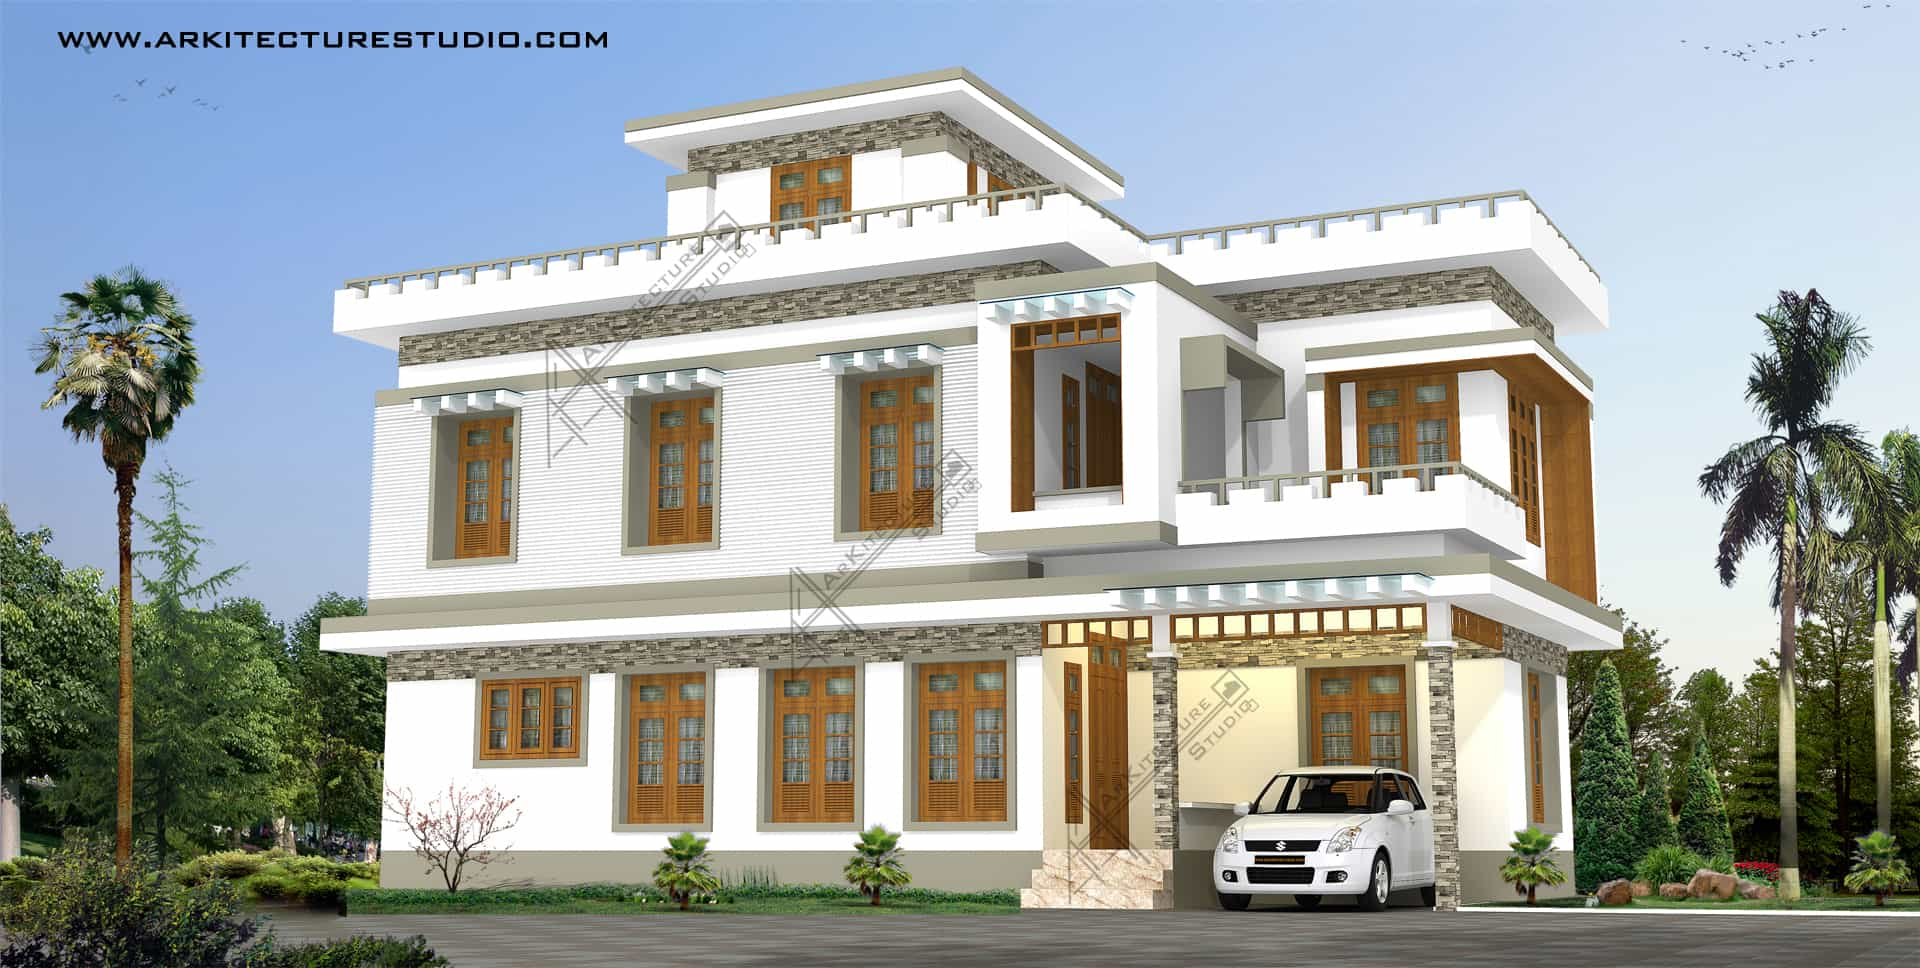 Kerala home designs 2015 5 designs photos khp for Home designs 2015